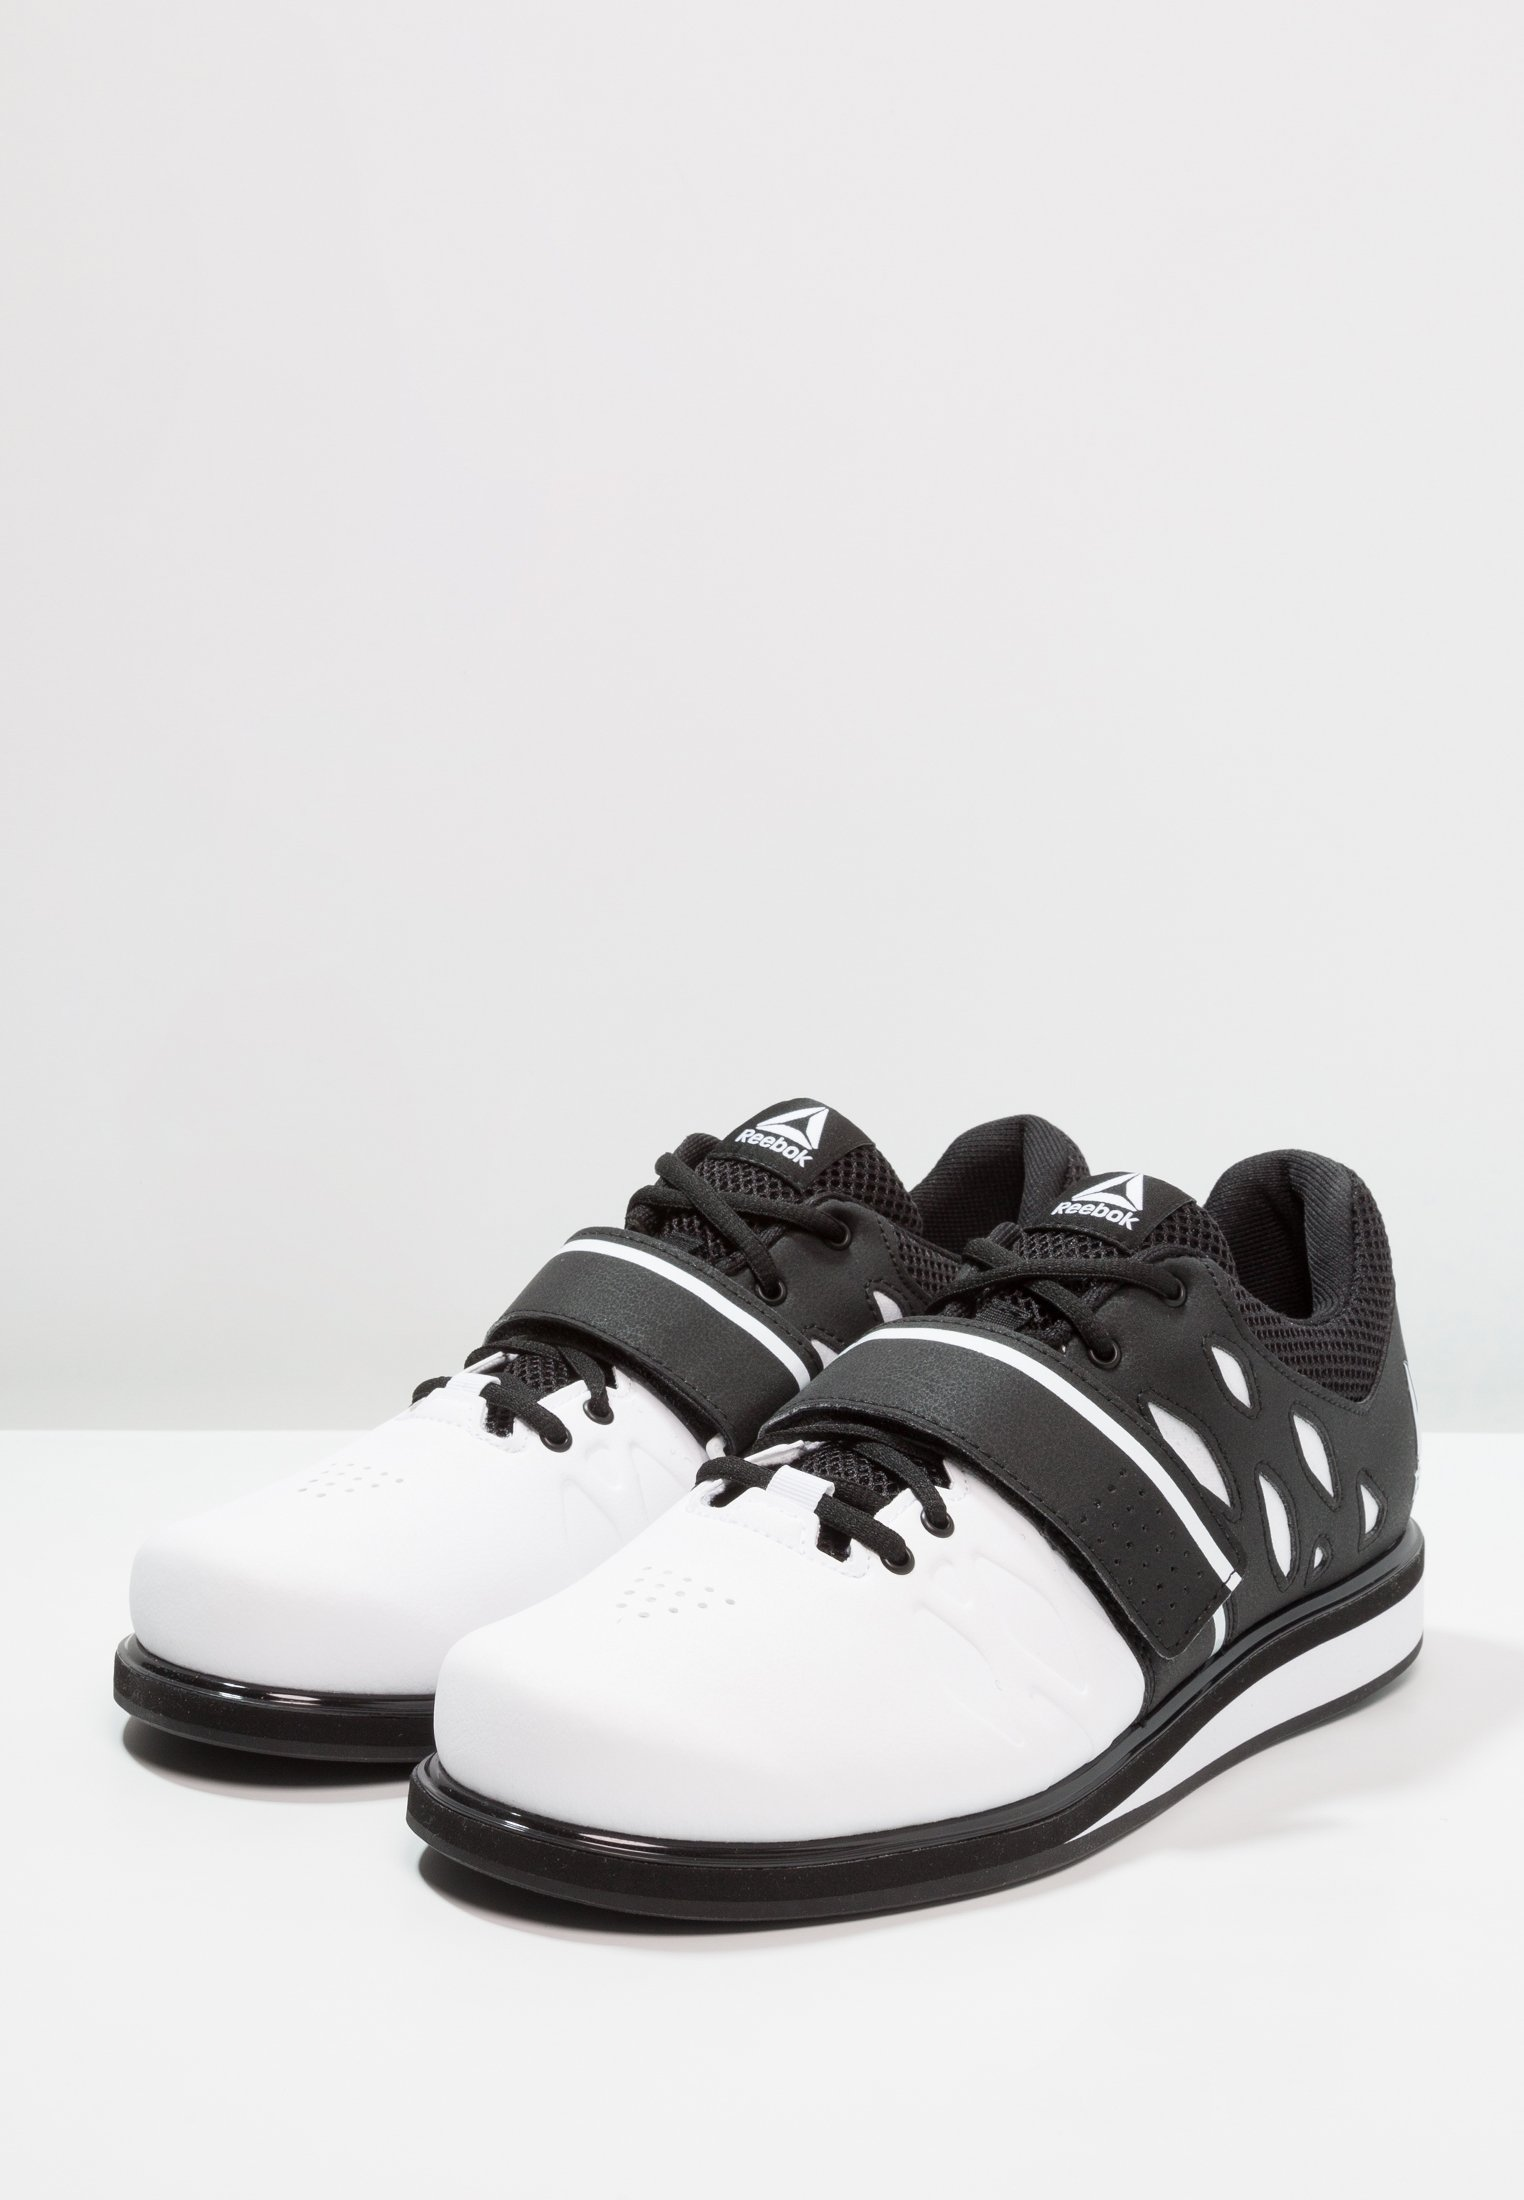 Reebok Lifter Pr Training Shoes - Treningssko White/black